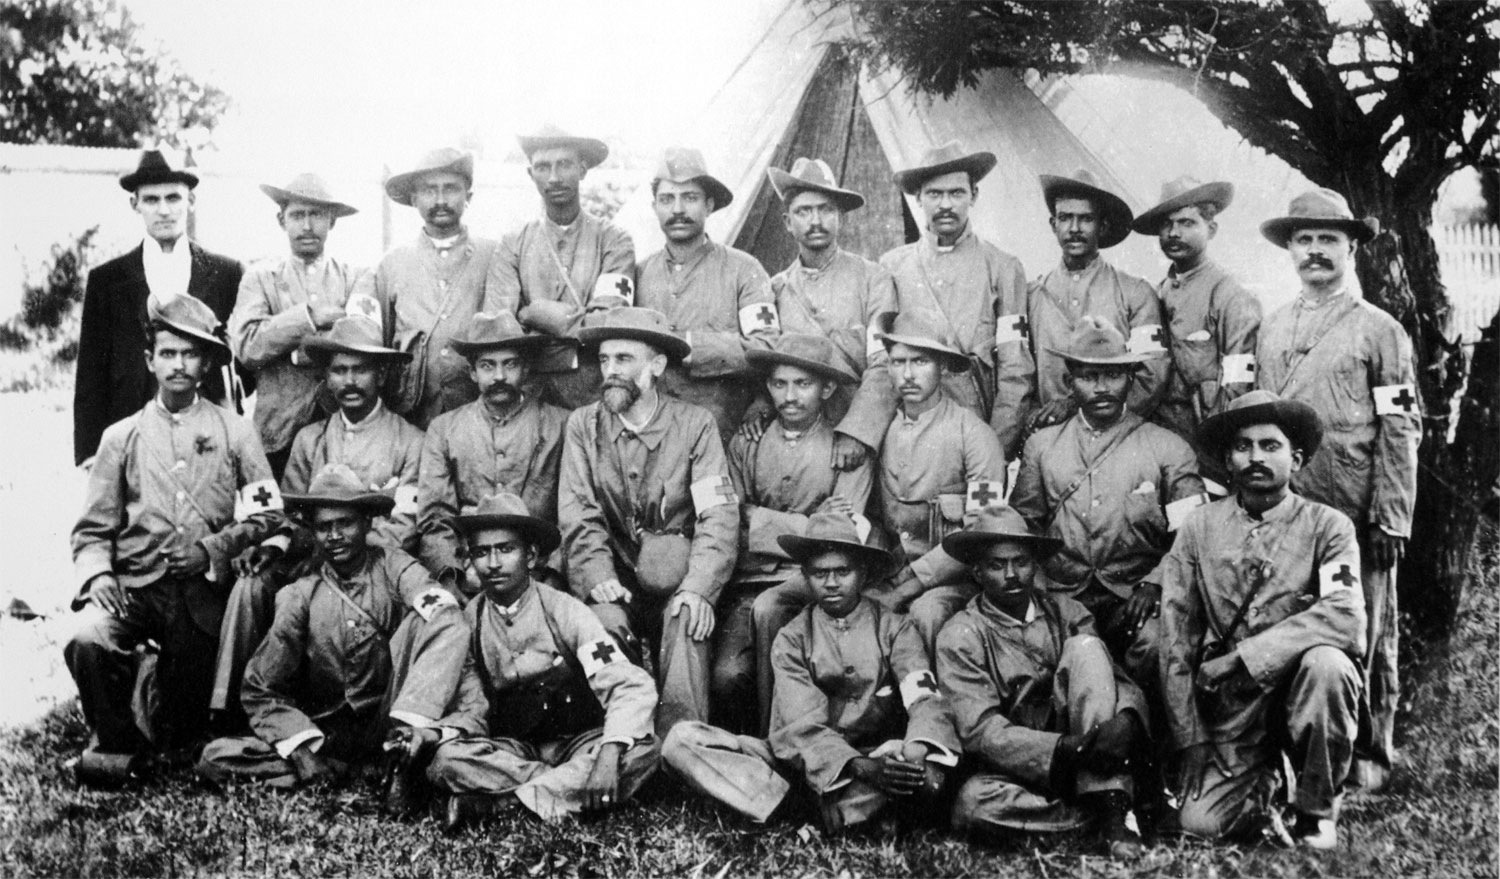 Mahatma Gandhi with the stretcher-bearers of the Indian Ambulance Corps during the Boer War, South-Africa - Between 1899 -1900